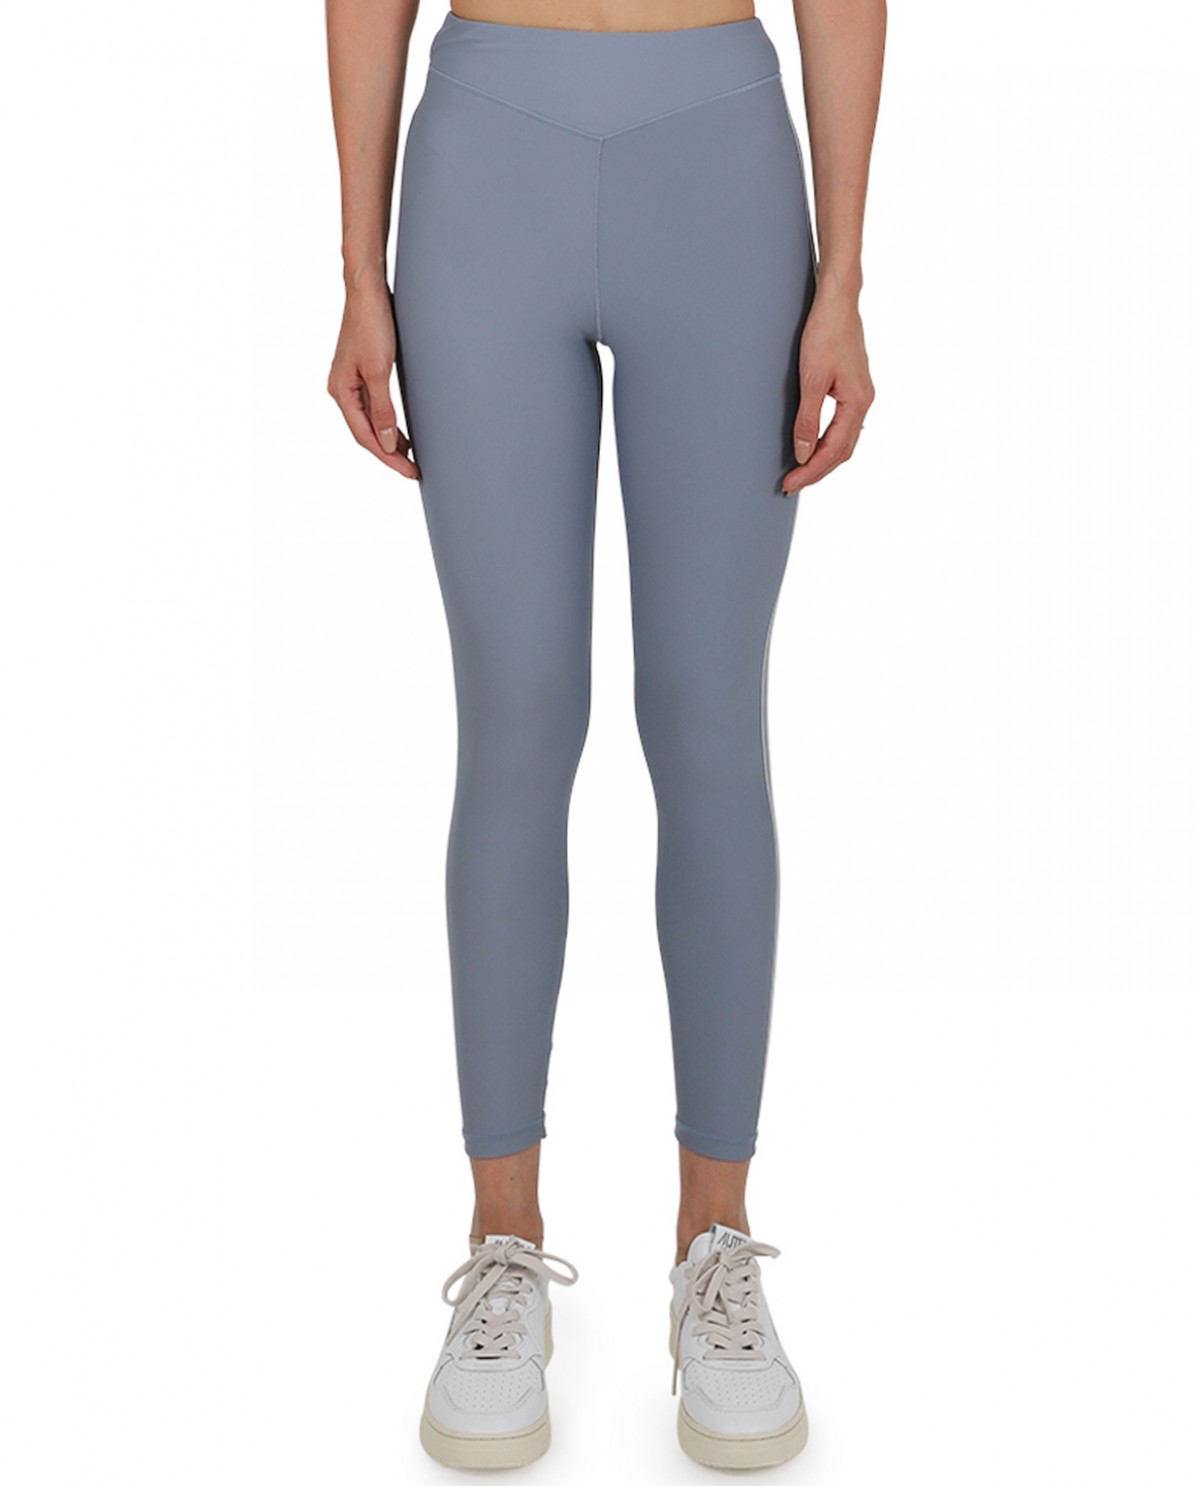 Adam Selman grey Plunge leggings